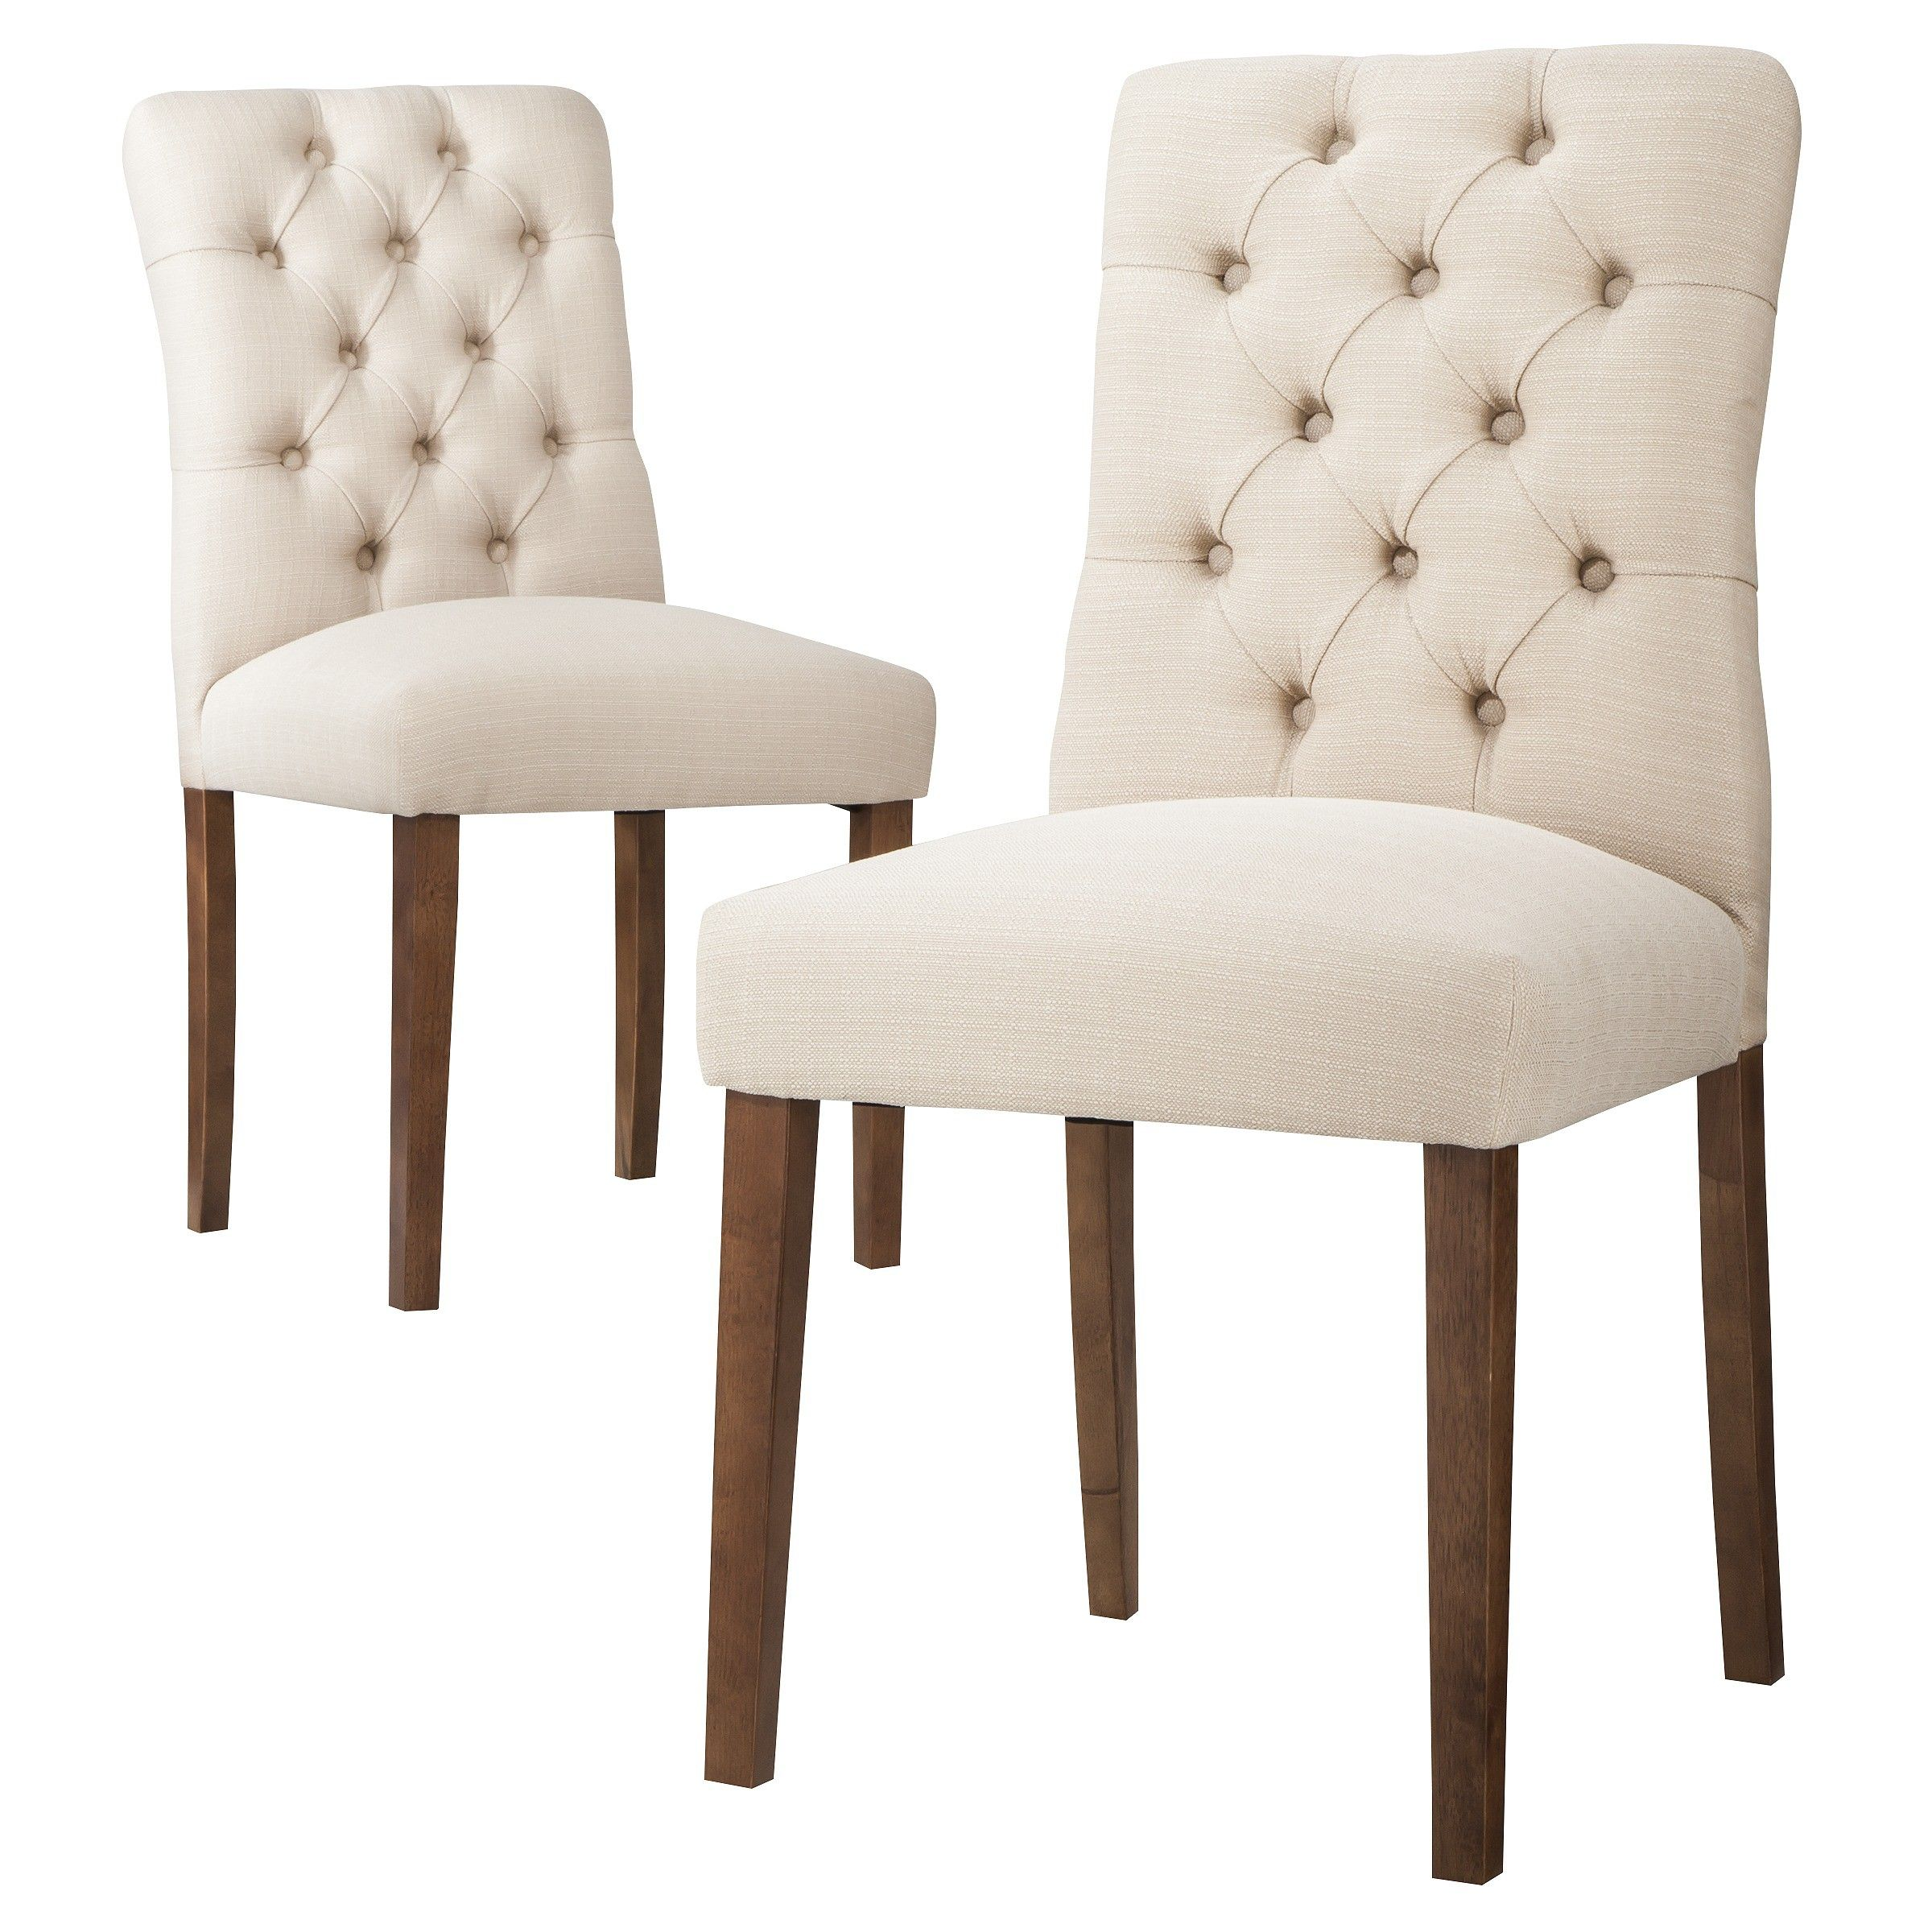 Kitchen Chairs At Target Antique Directors Chair 120 Threshold Brookline Tufted Dining Set Of 2